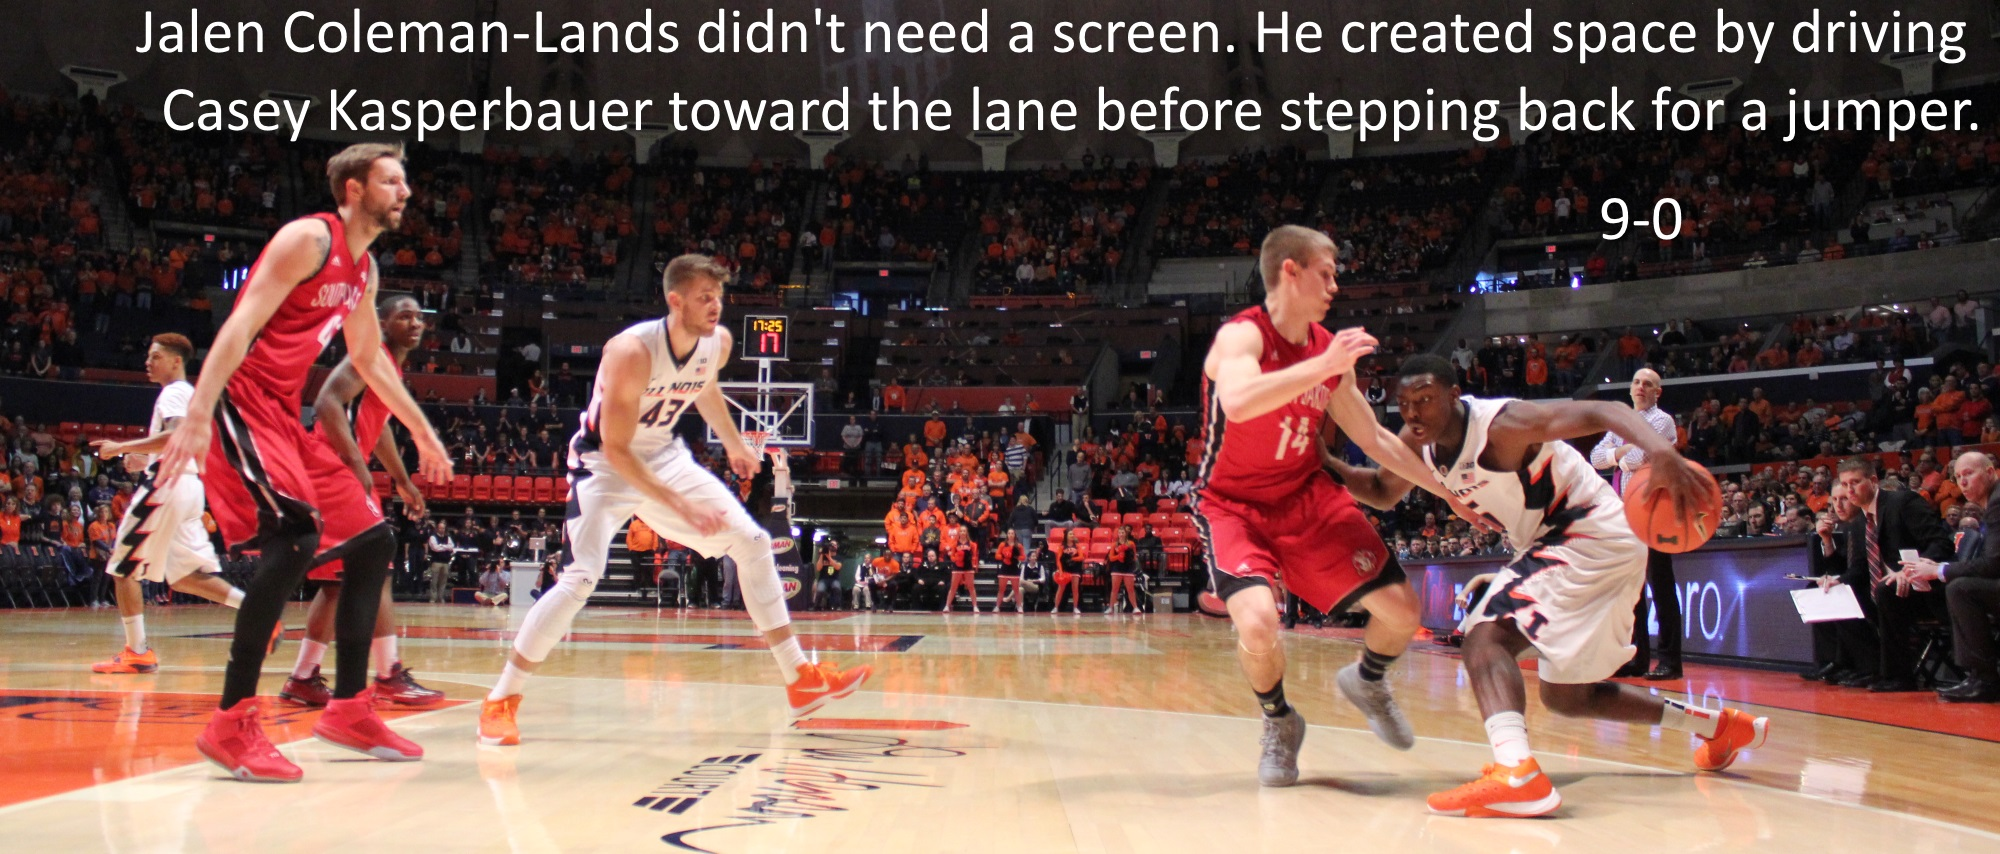 Jalen Coleman-LAnds did not need a screen. He created space by driving Casey Kasperbauer toward the lane before stepping back for a jumper 9-0